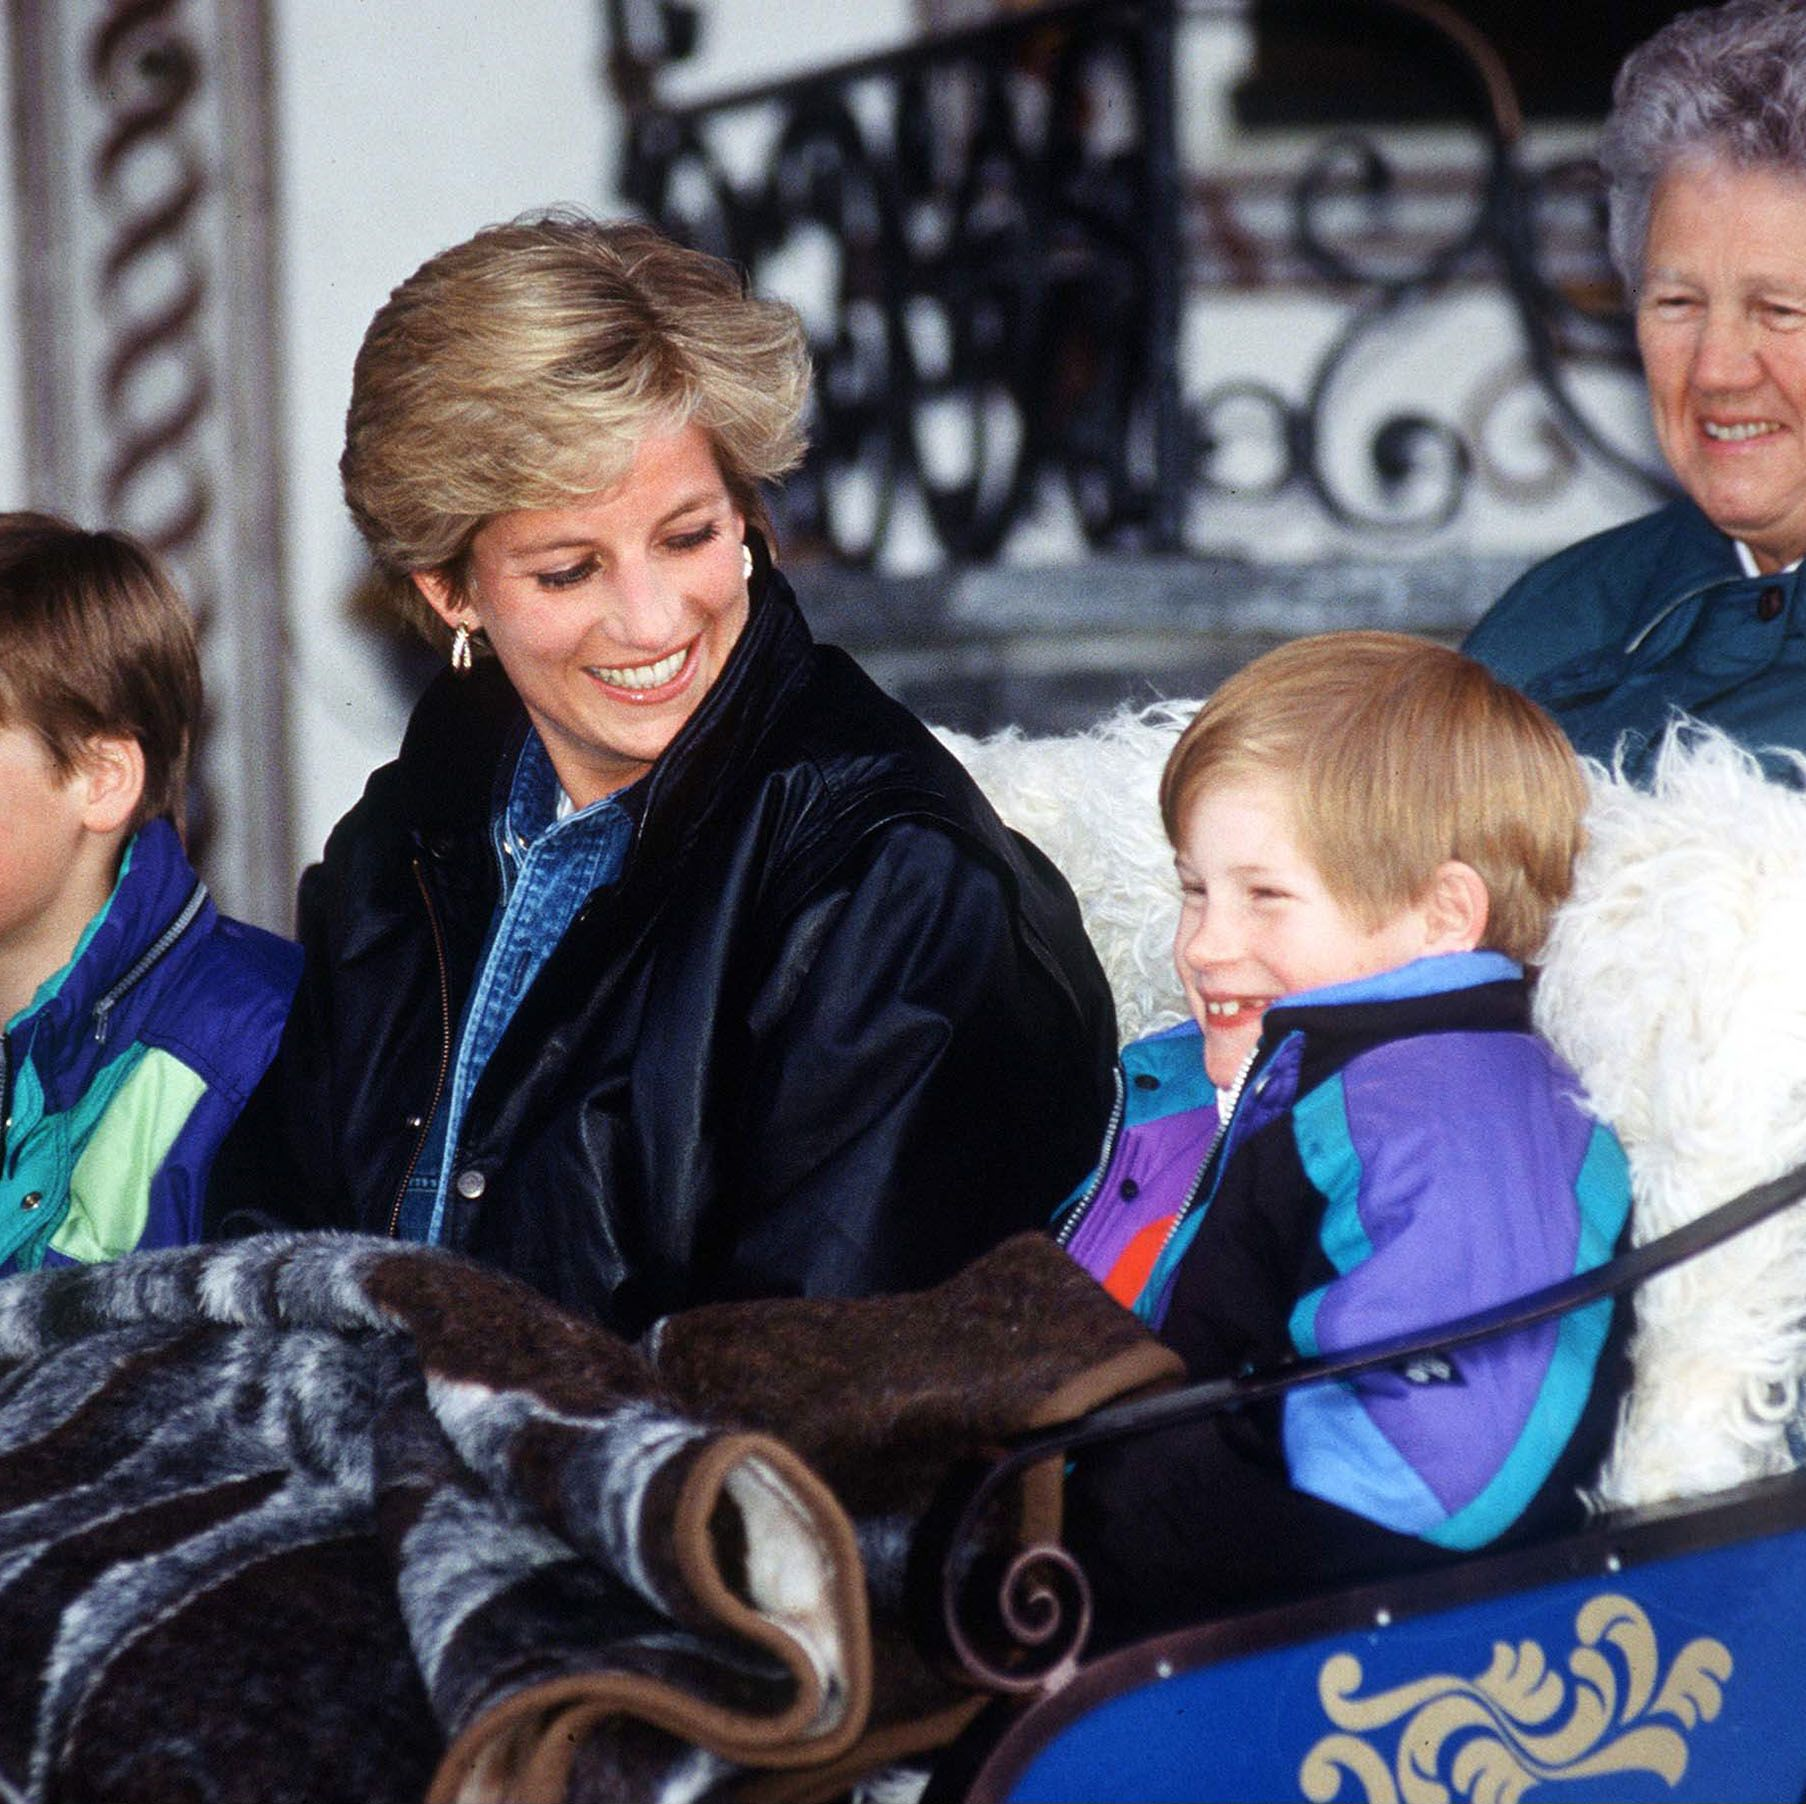 Princess Diana Thought Prince Harry Would Have Made a Great King